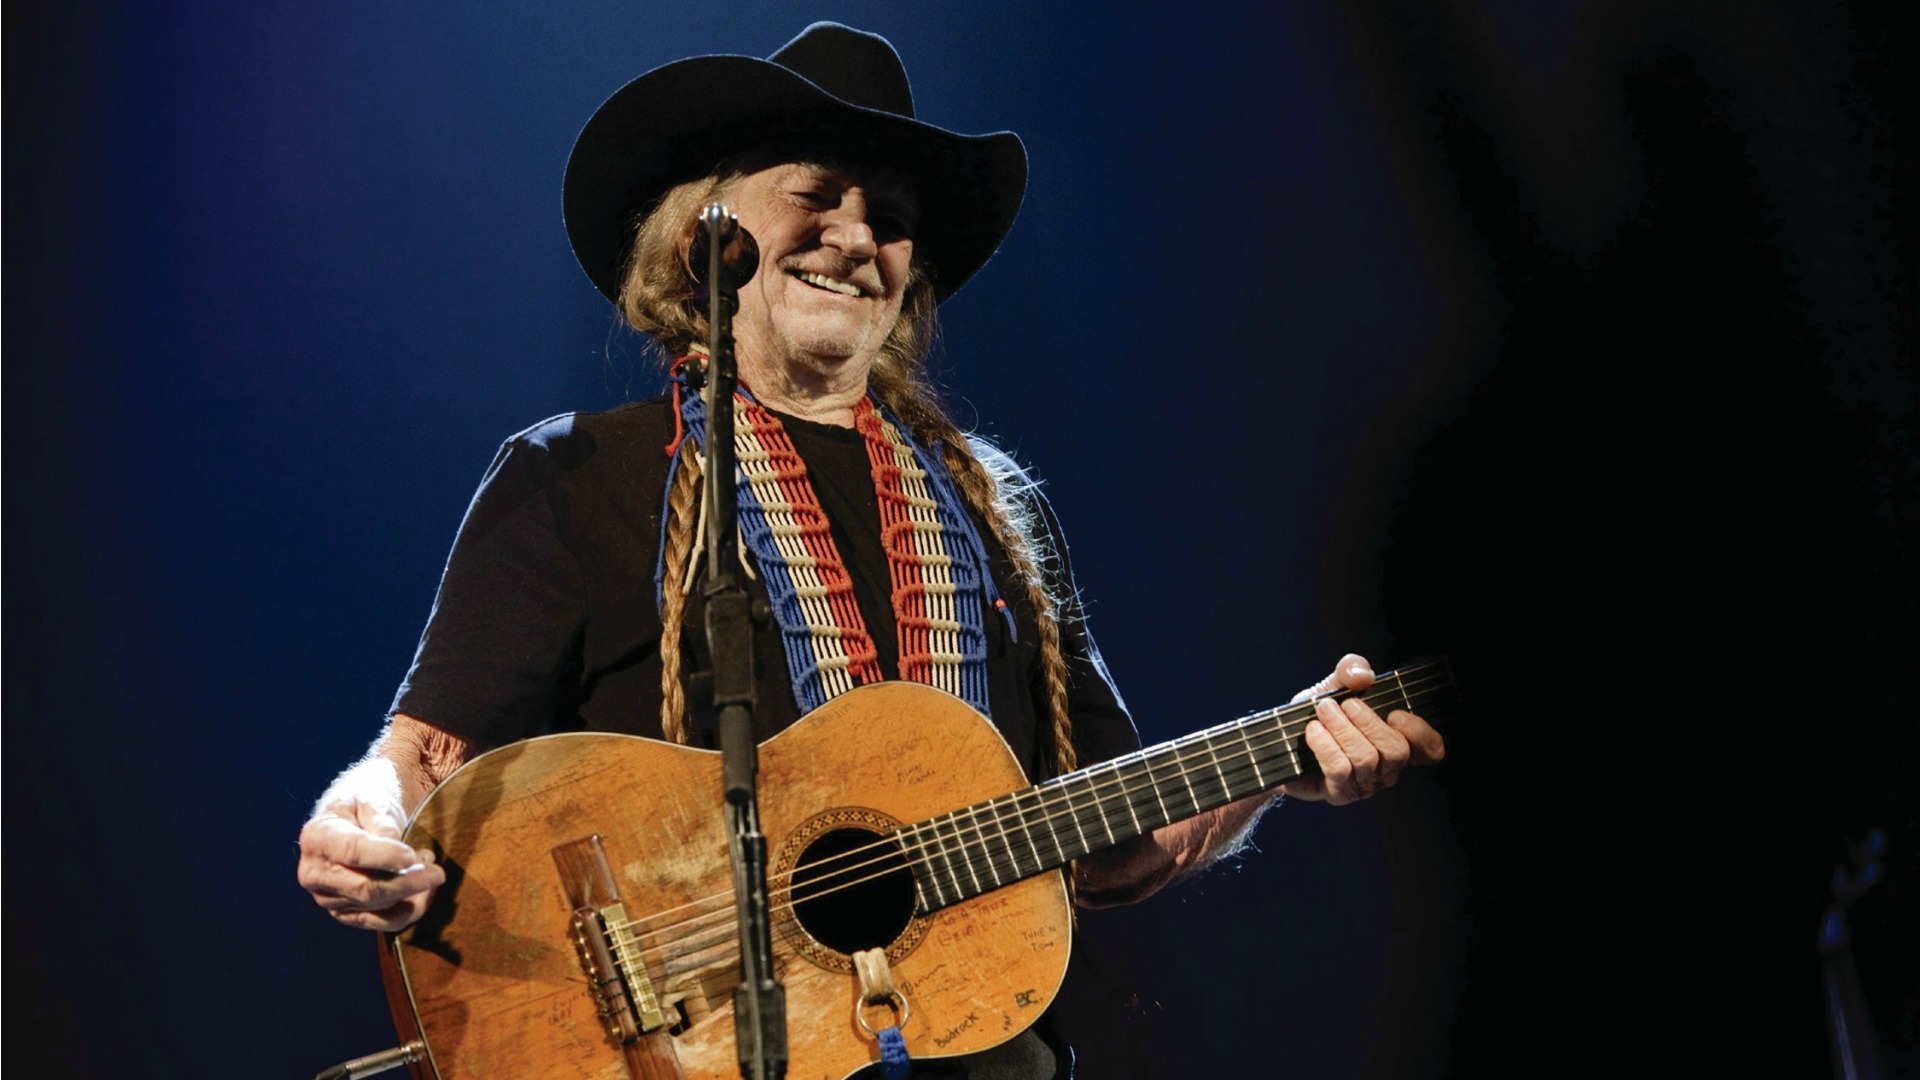 10. When Willie Nelson took home the inaugural GRAMMY Legend Award.